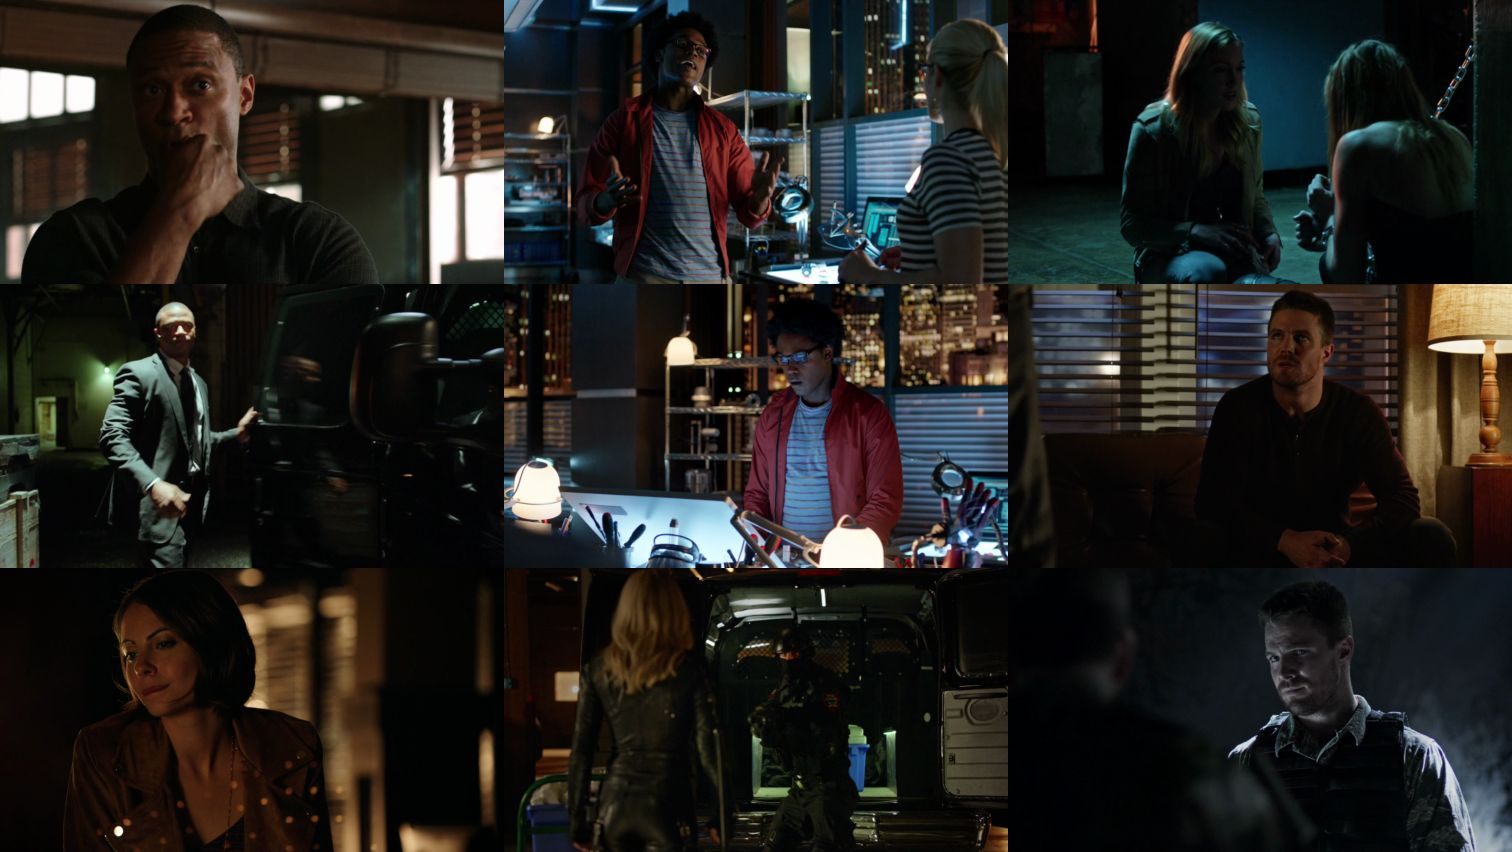 Arrow S04E04 720p HDTV X264-DIMENSION